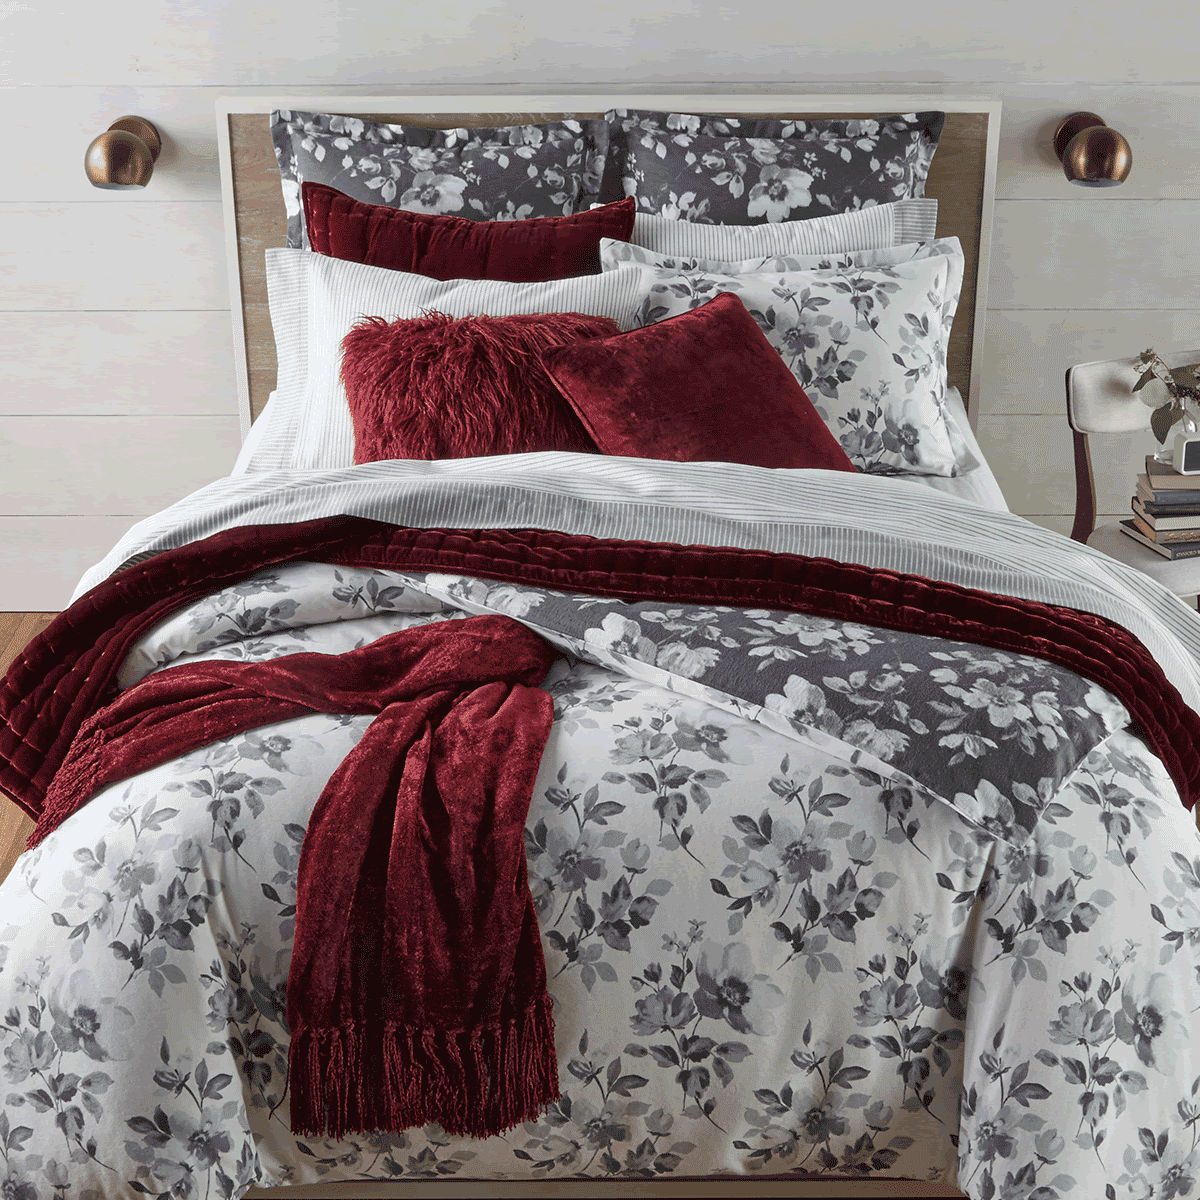 Flannel Bedding